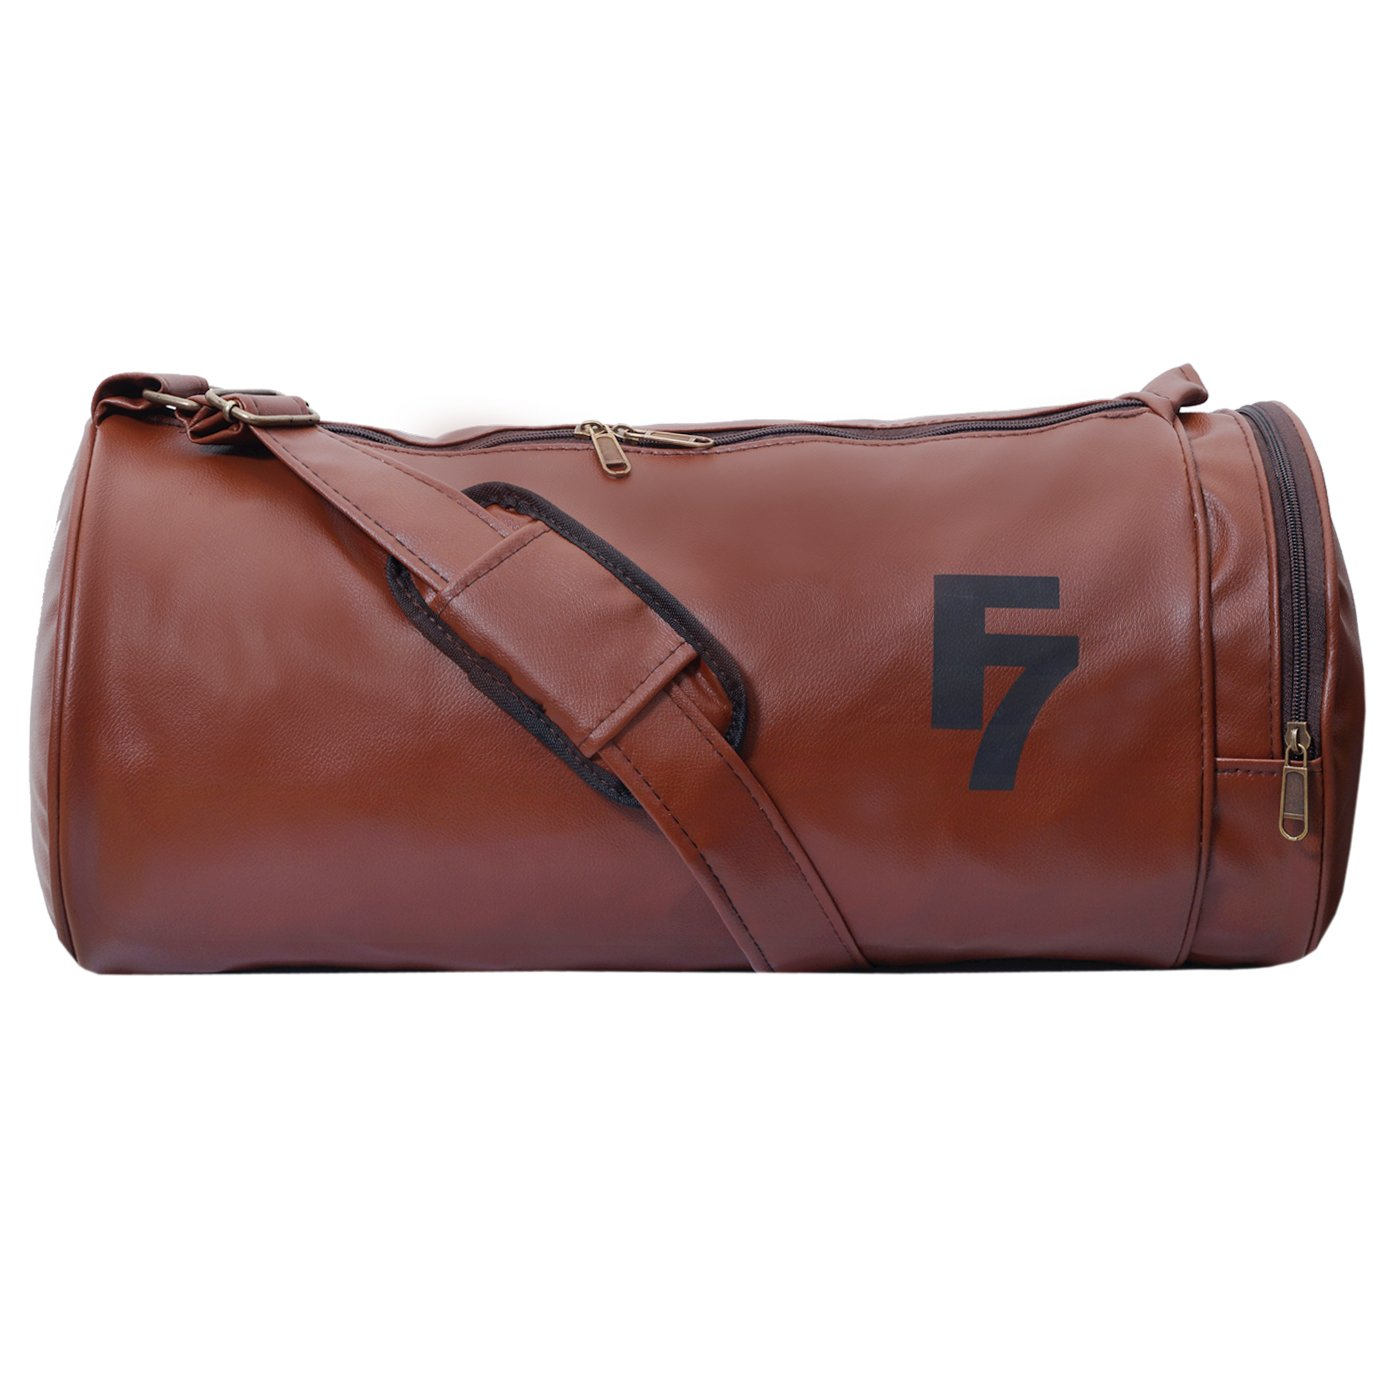 Small Luggage Bags Online India  b7cce15dc495d